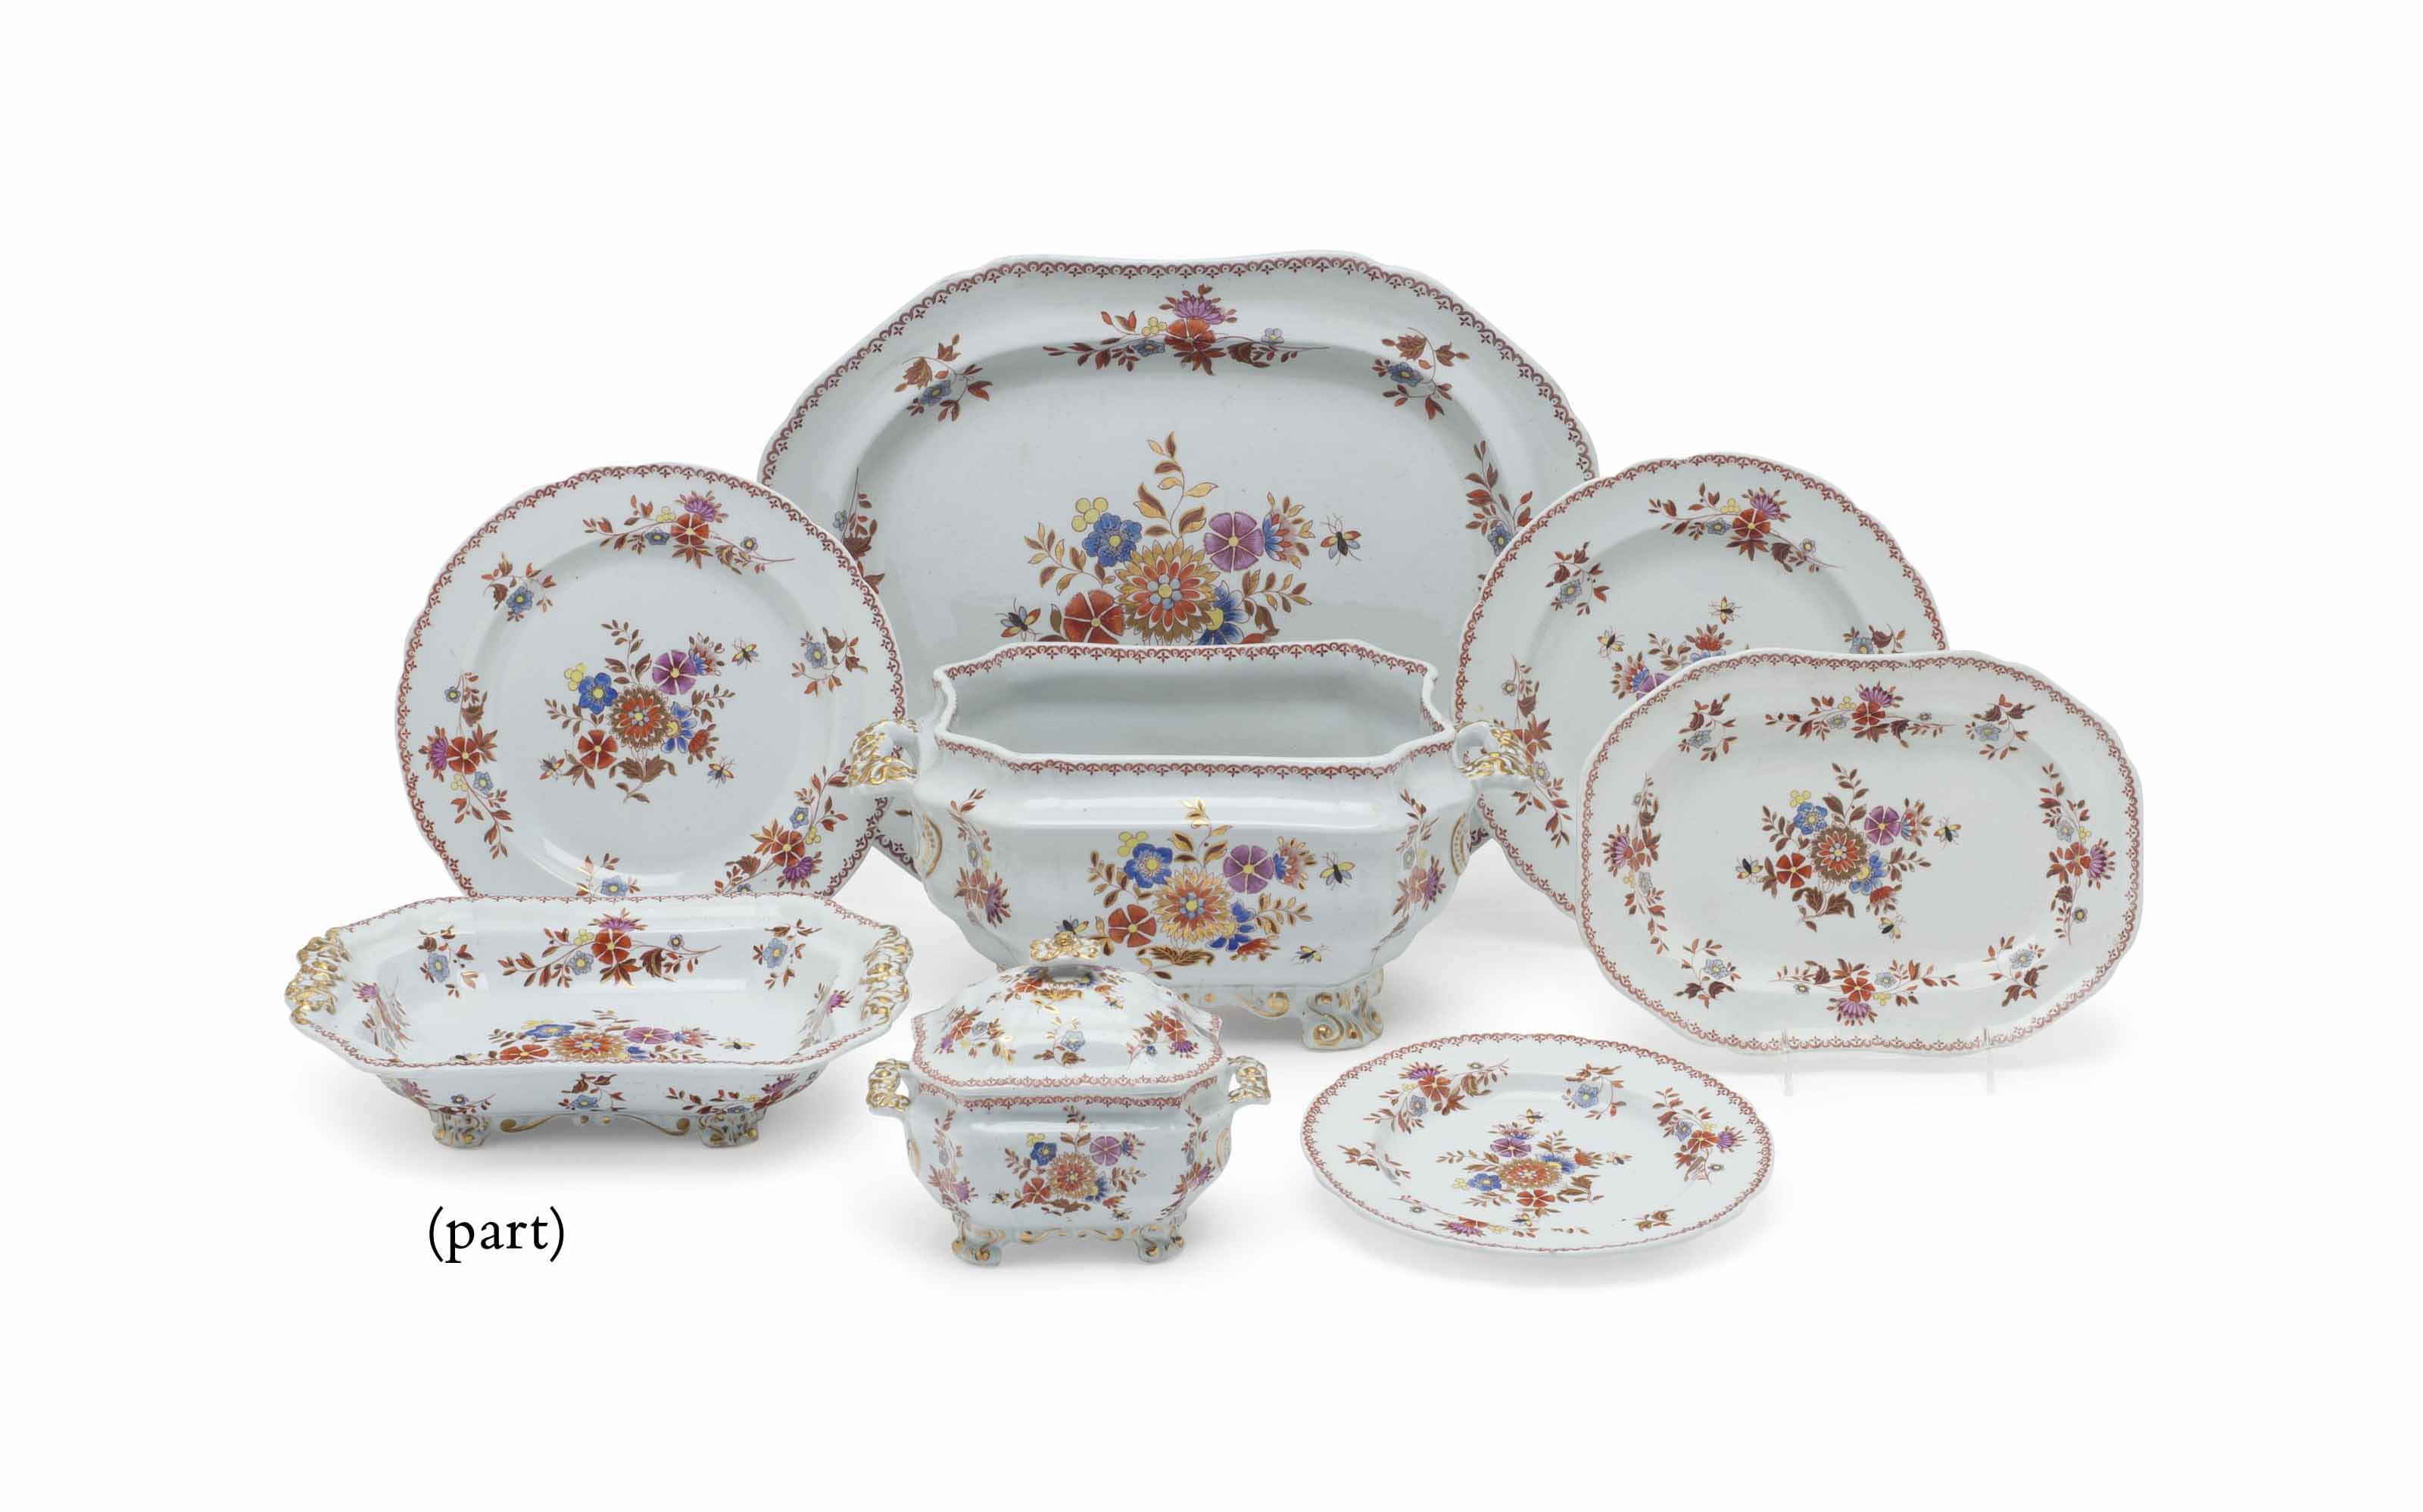 A SPODE NEW STONE CHINA PART DINNER SERVICE